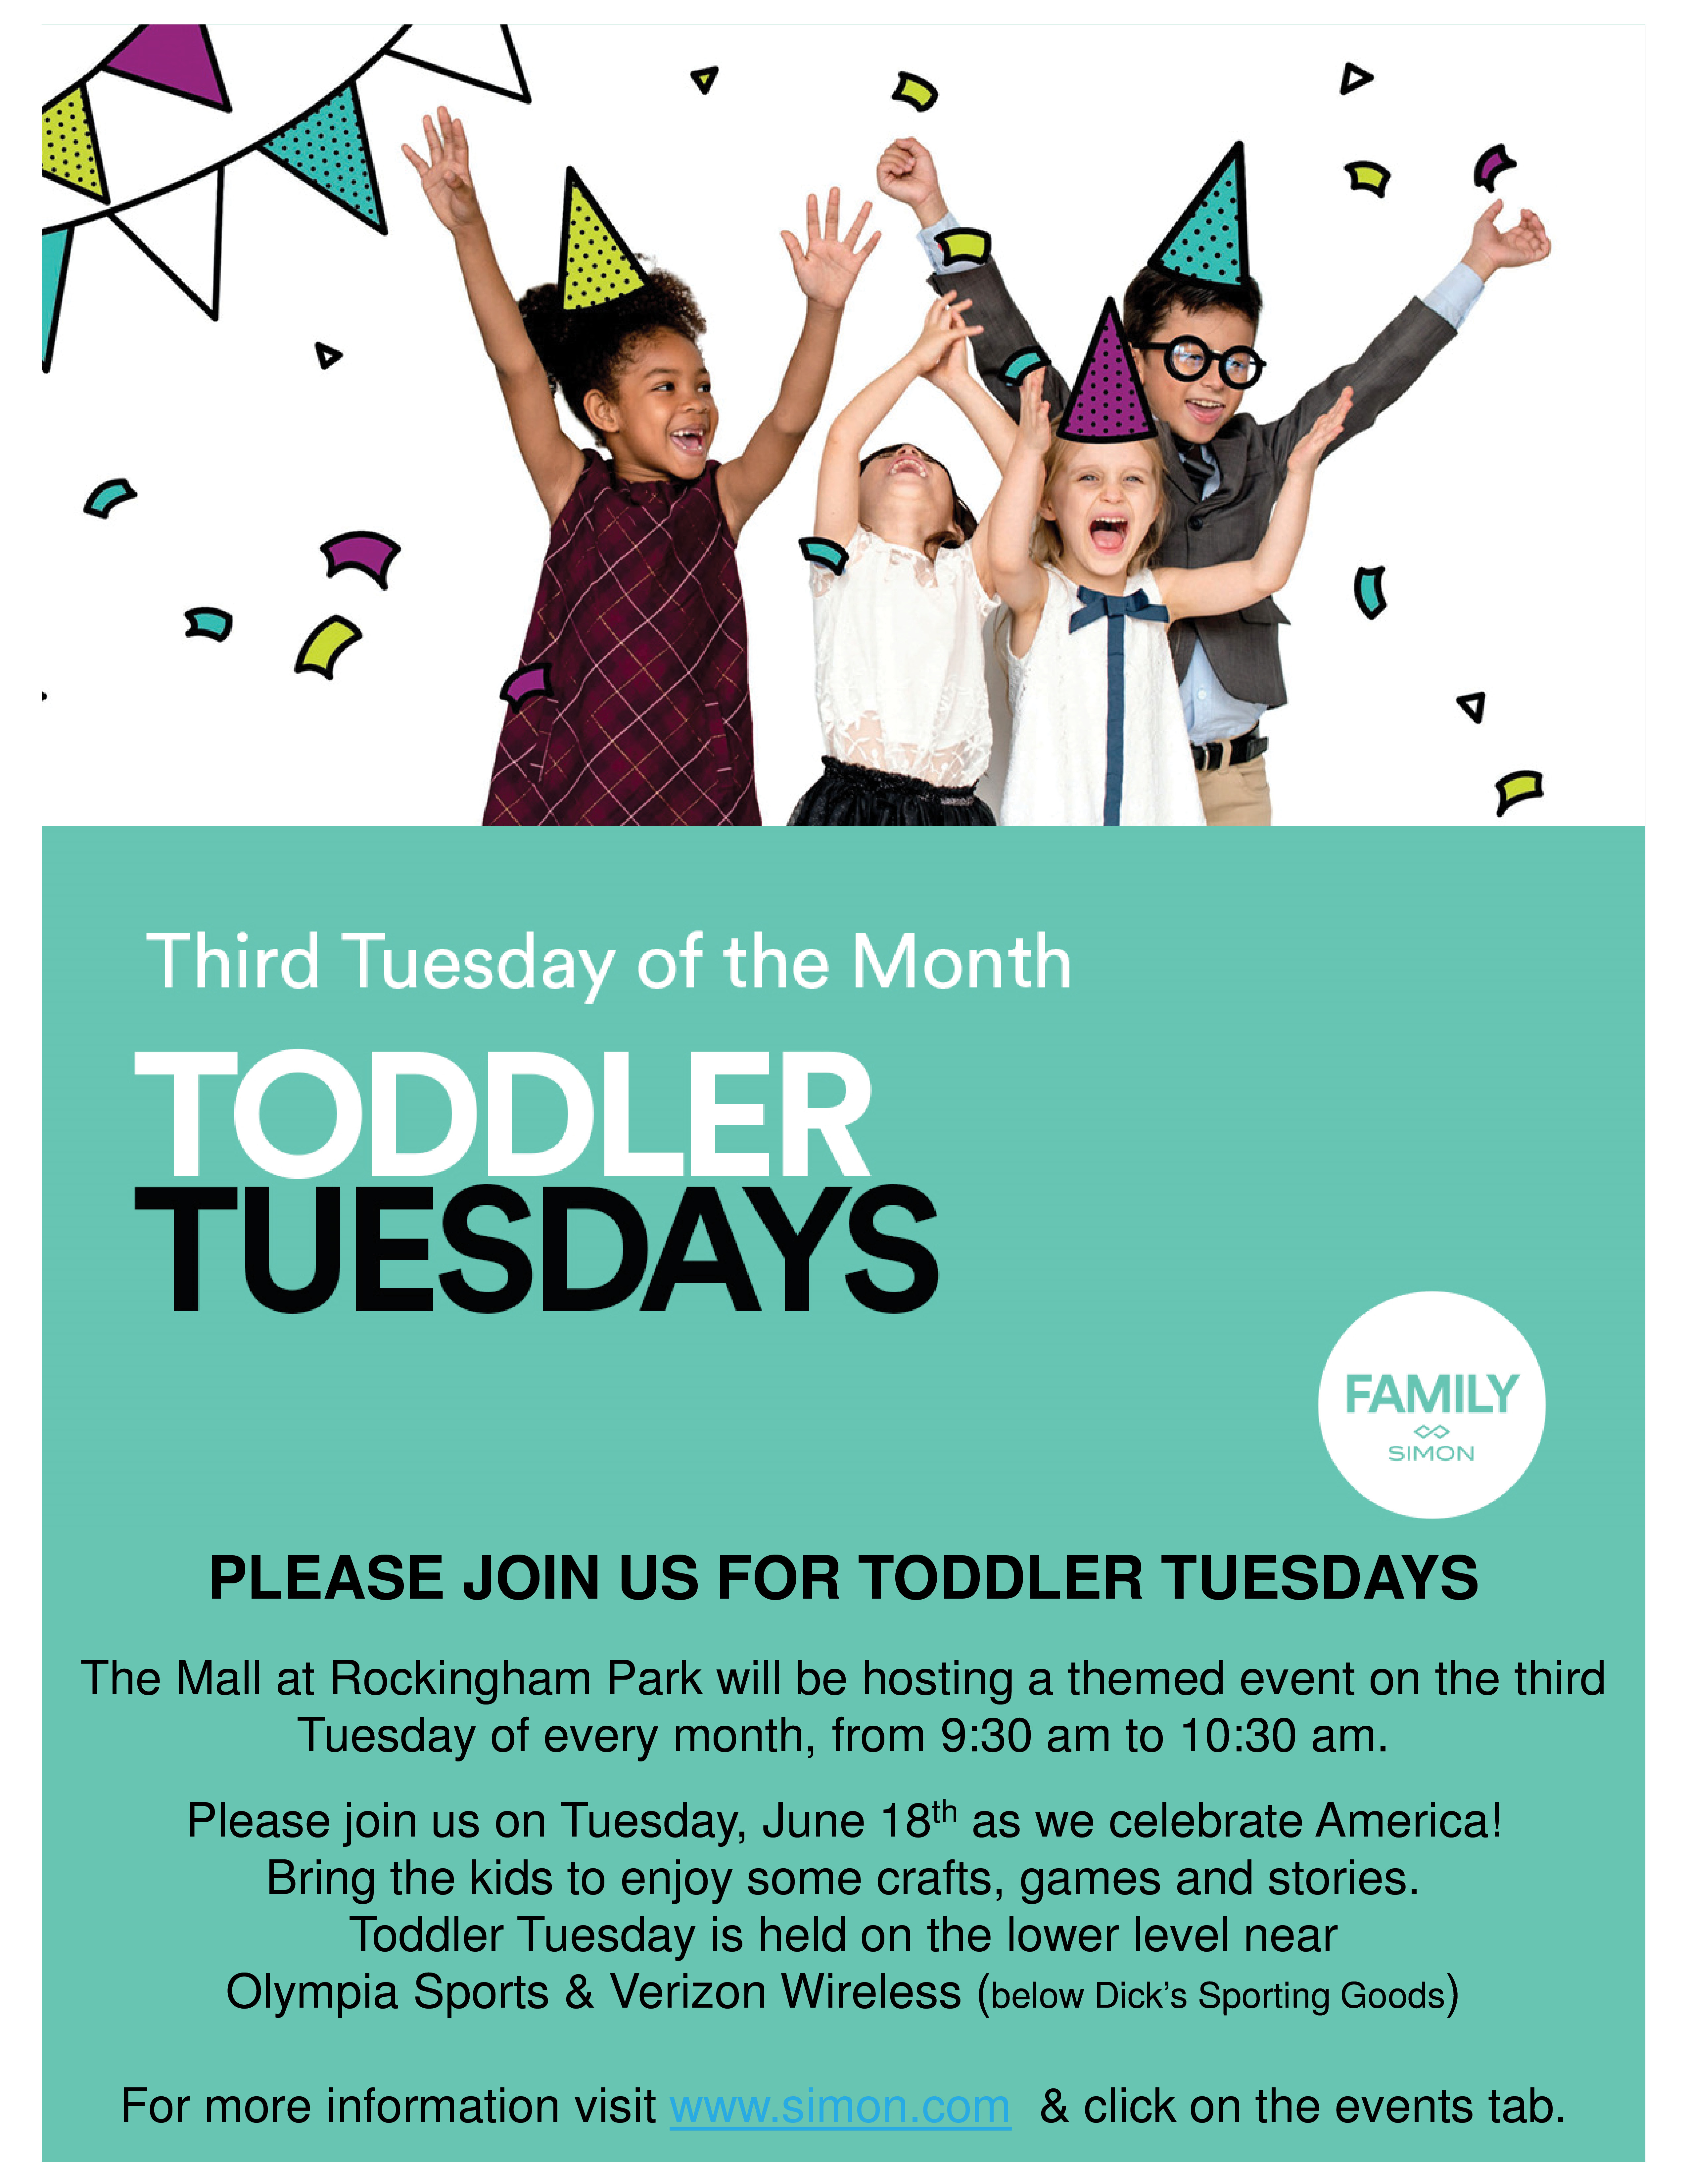 Mall_Toddler-Tuesdays.jpg